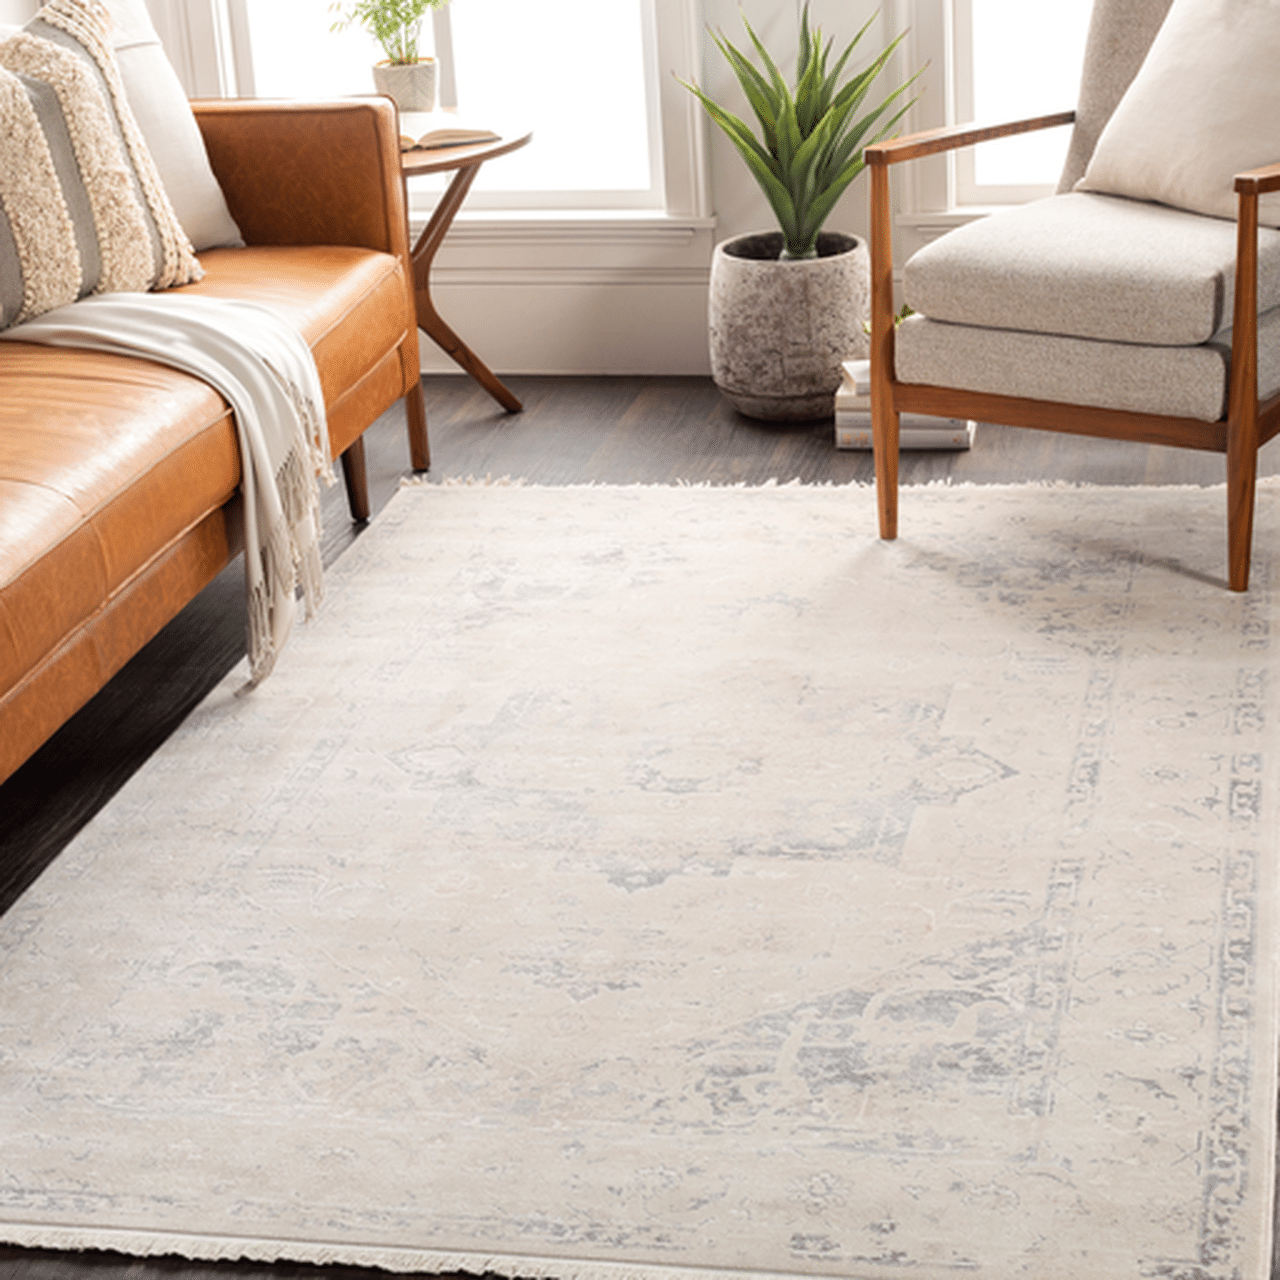 Thorough Boutique Rugs Dibble Area Rug Review for a living room rug from an Interior Designer.